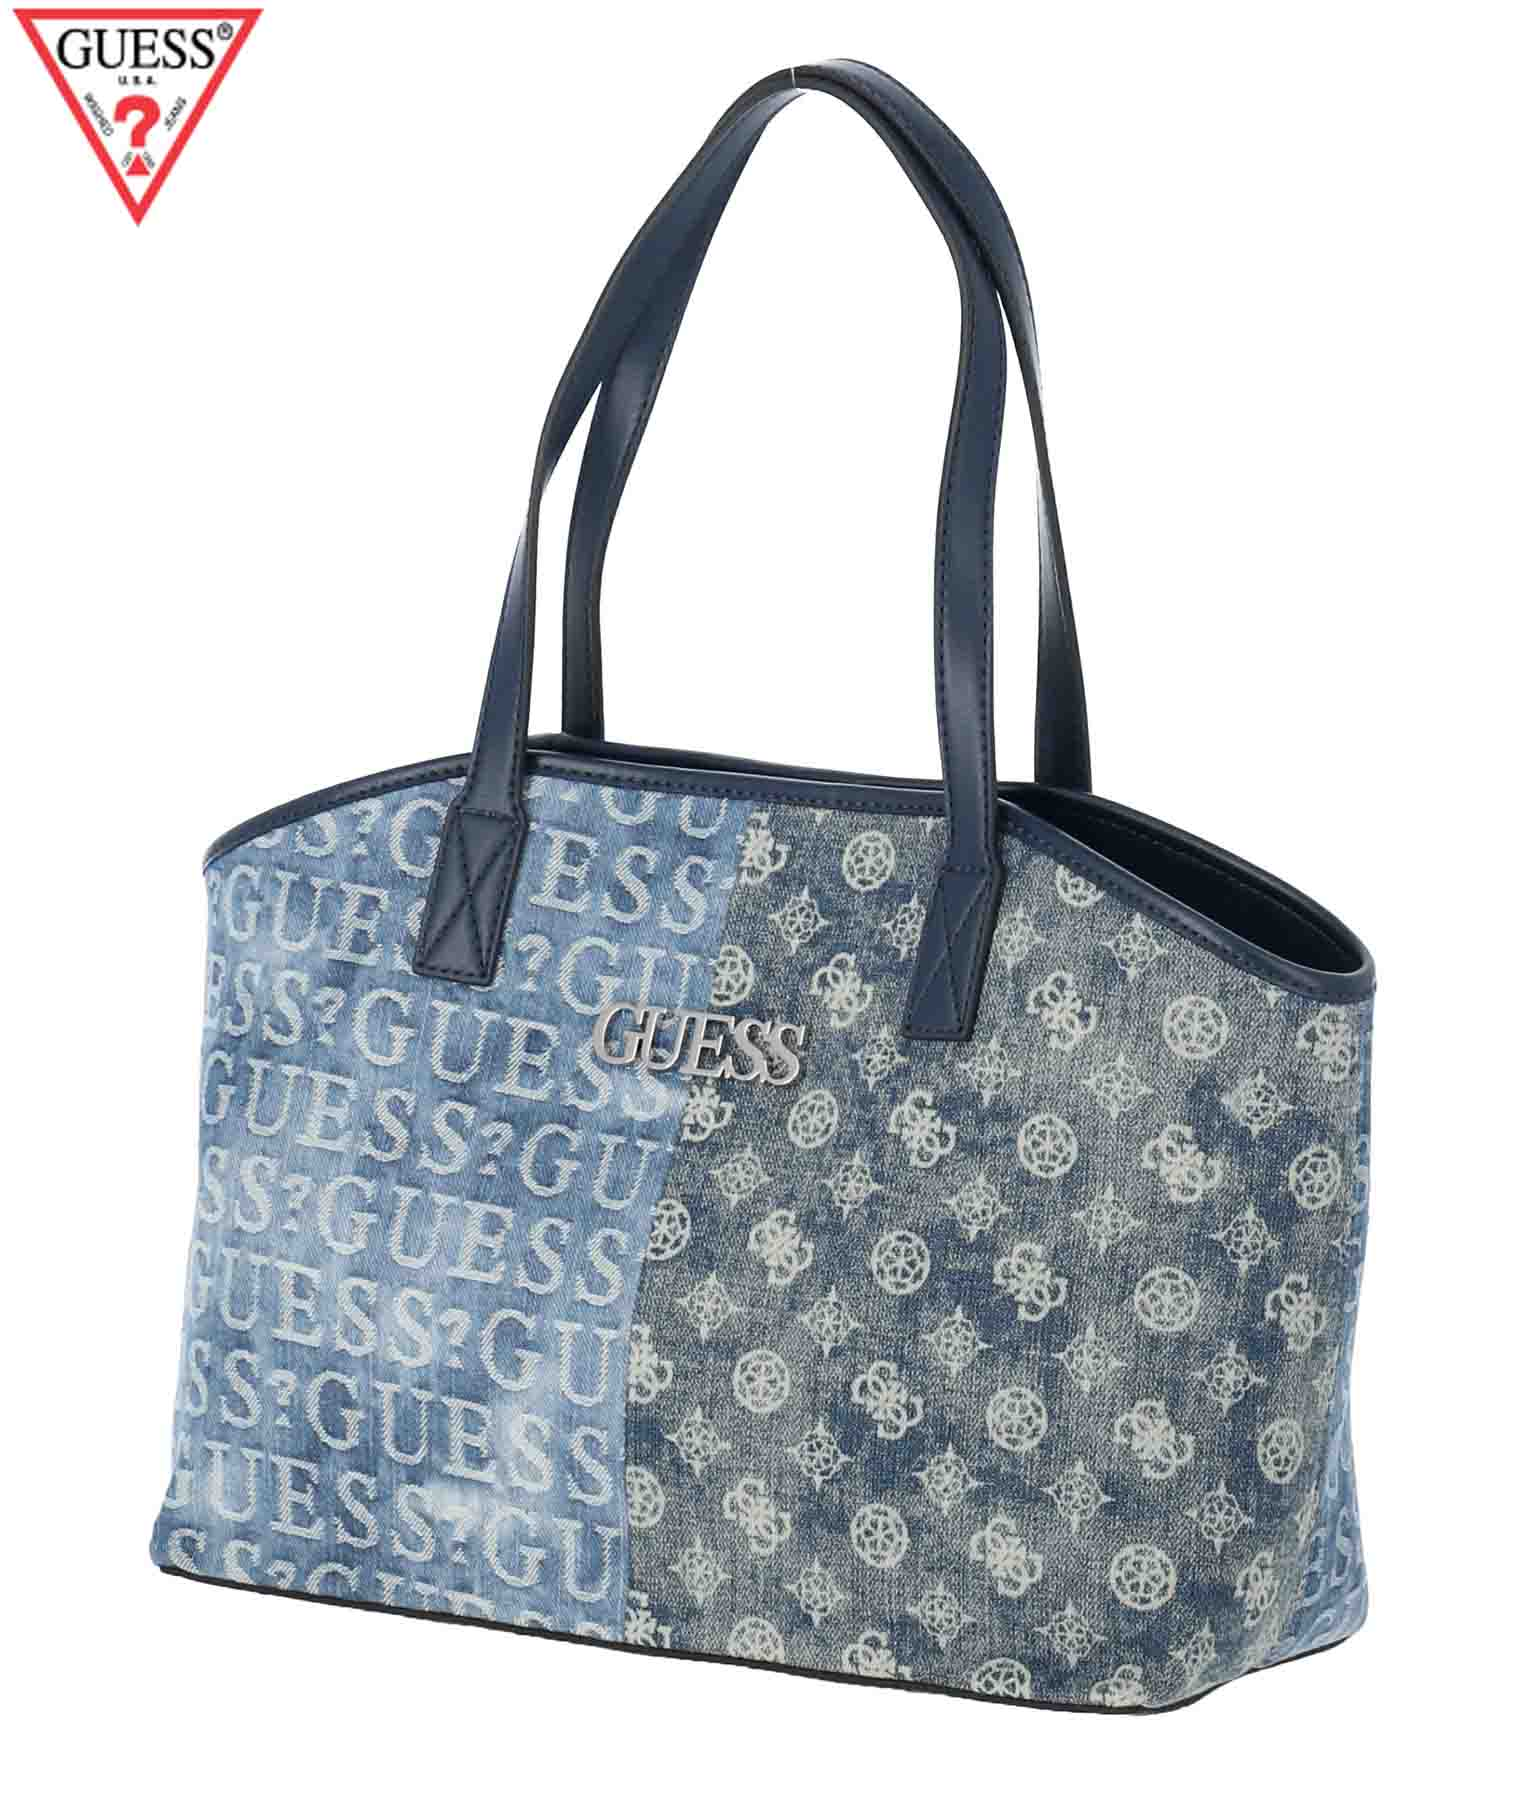 GUESS NEW AGE TOTE